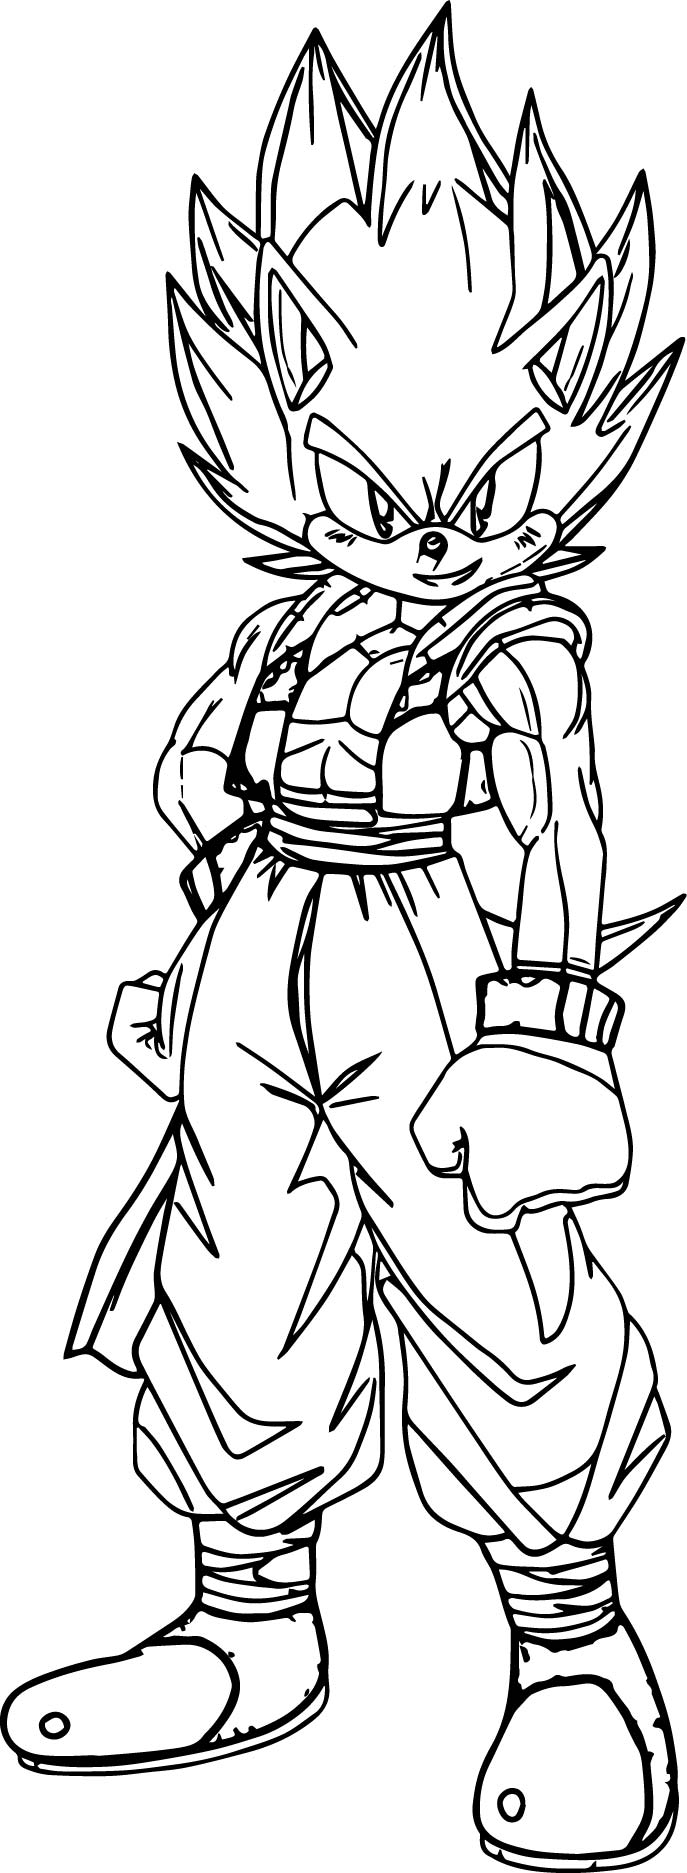 Goku sonic coloring page for Goku coloring page